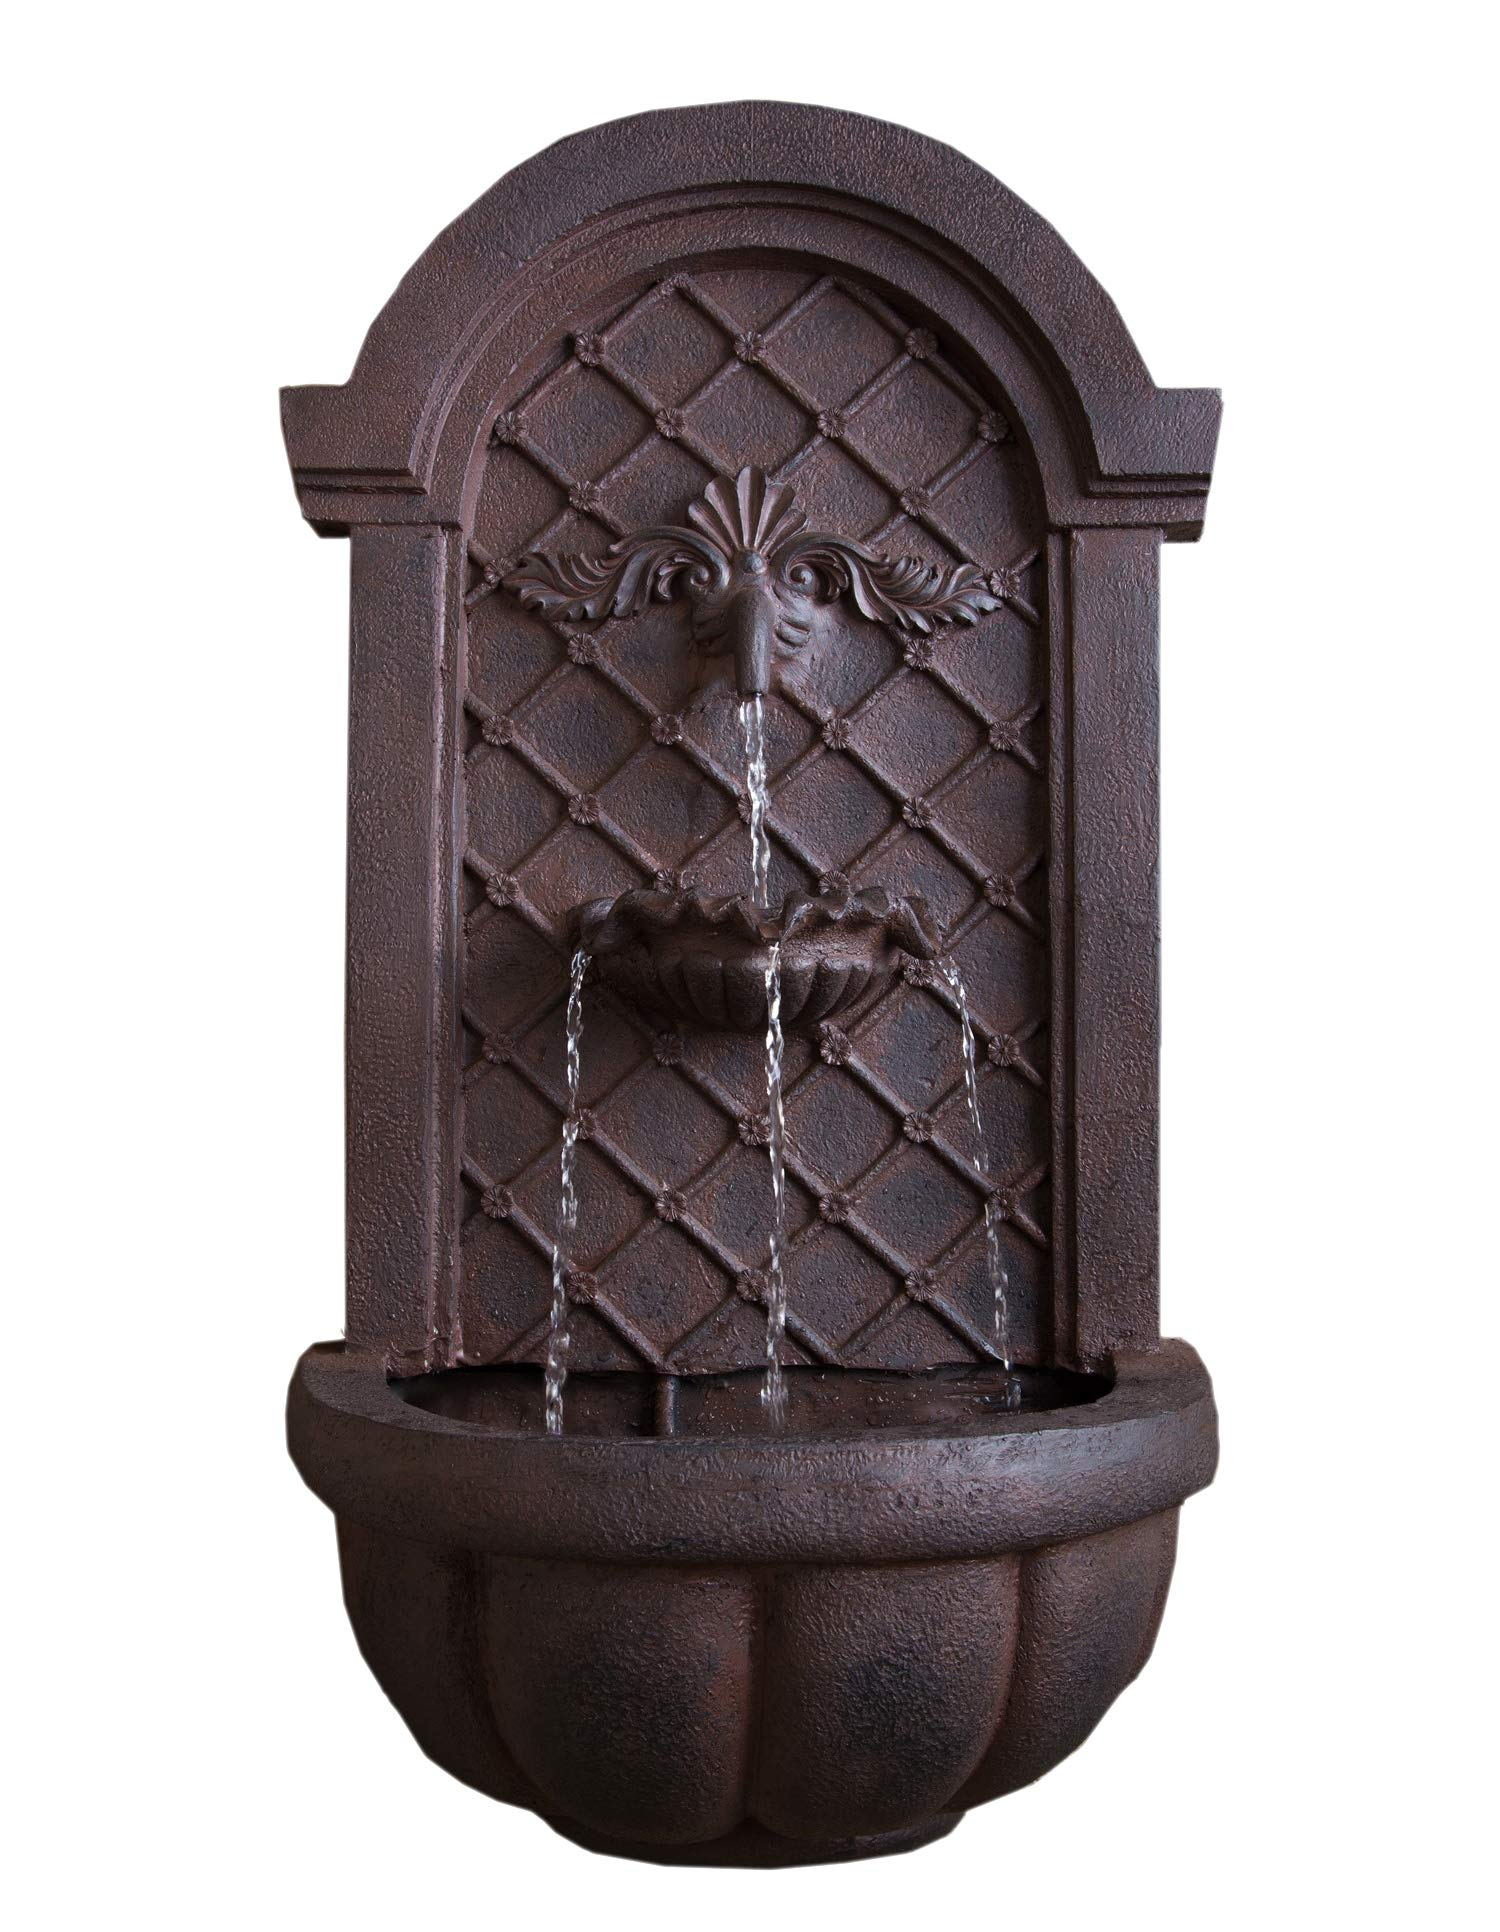 The Manchester - Outdoor Wall Fountain - Weathered Bronze - Water Feature for Garden, Patio and Landscape Enhancement